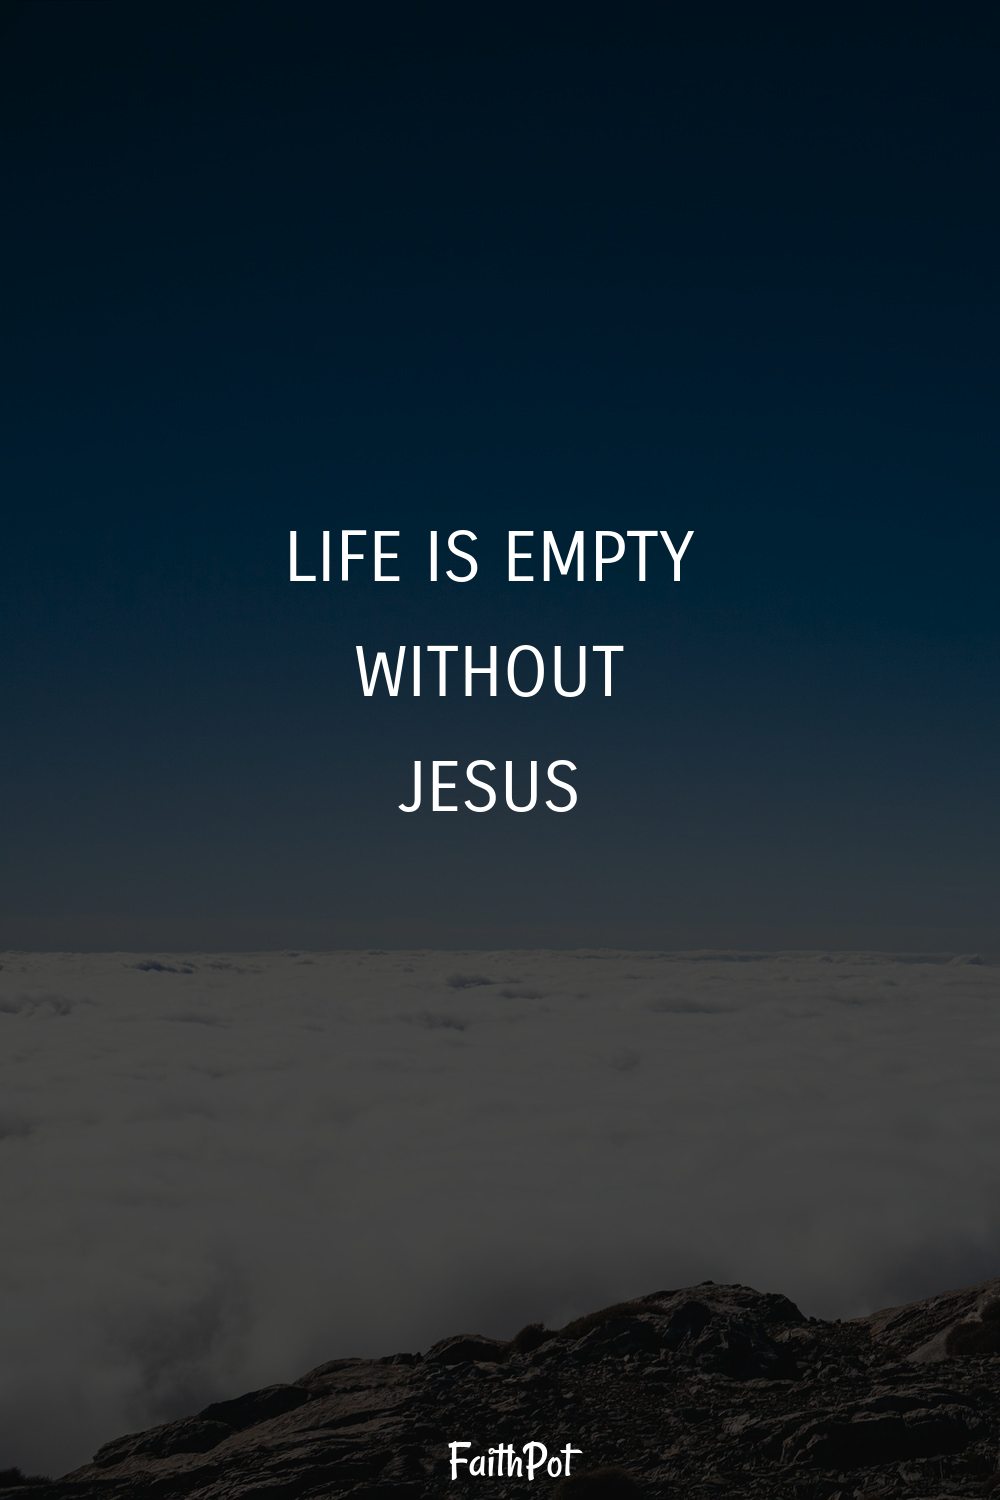 Life is empty without Jesus